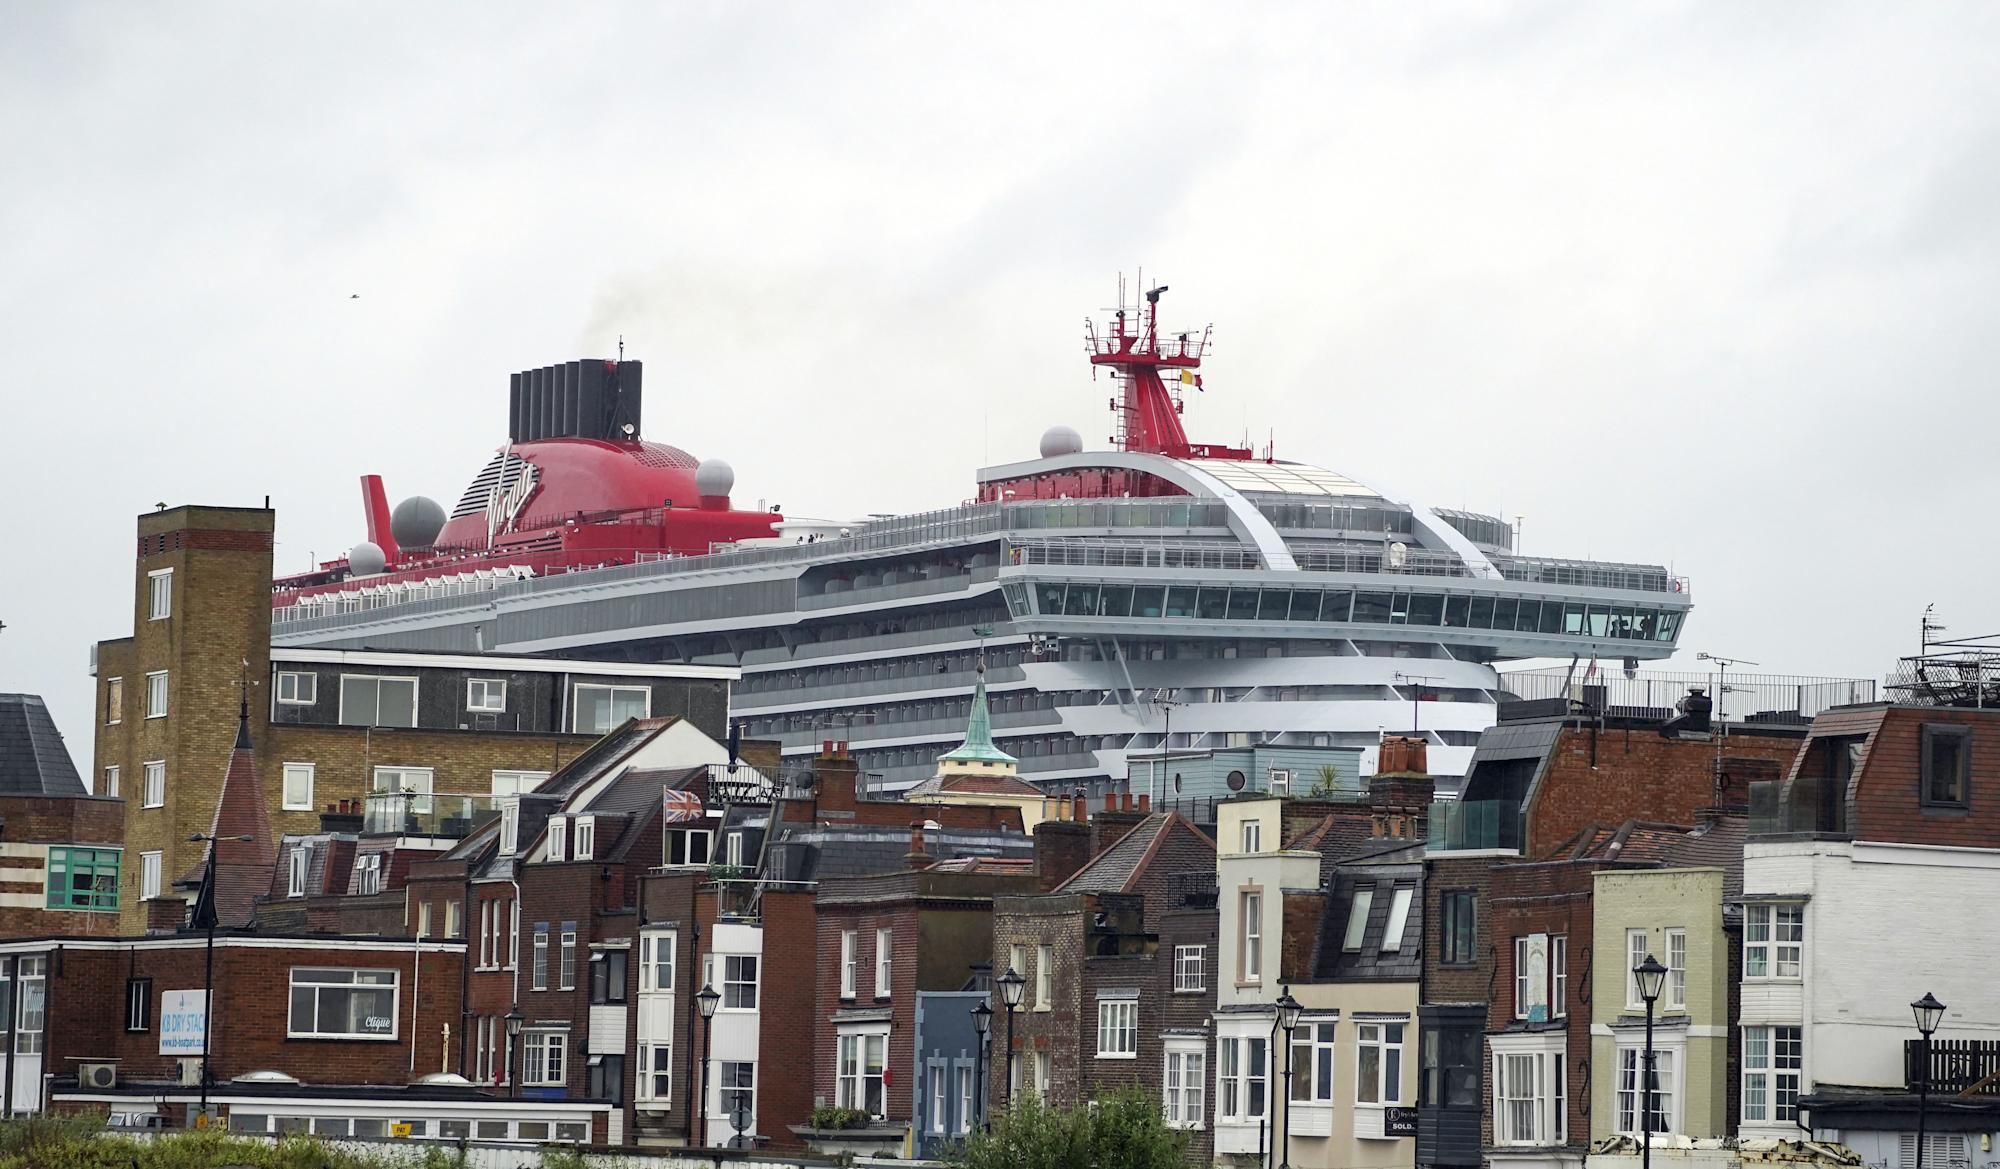 Largest cruise ship to dock in Portsmouth dwarfs buildings as it sails into harbour